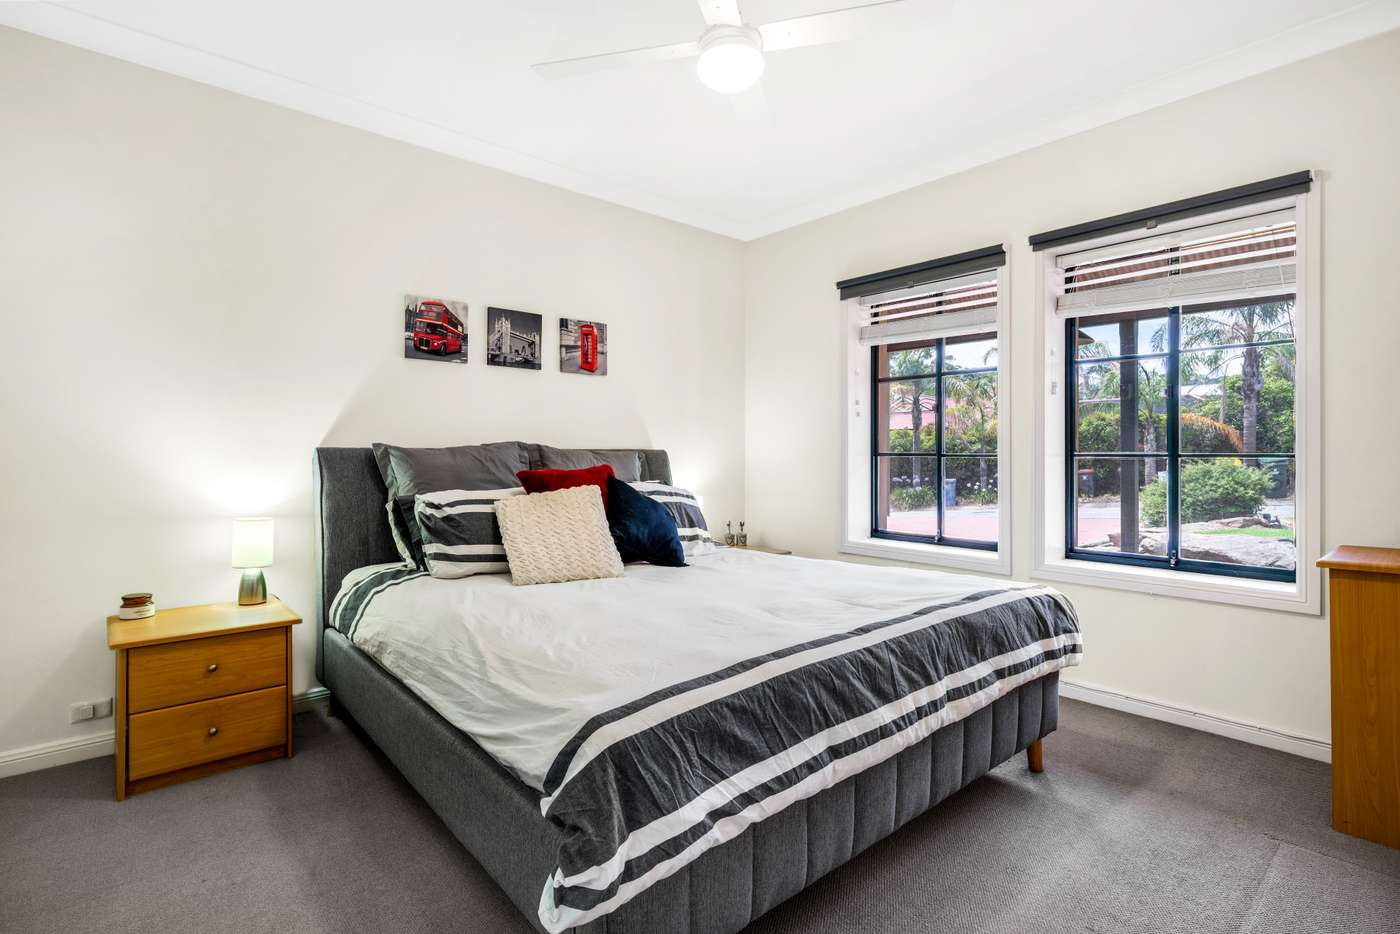 Sixth view of Homely house listing, 5 Huon Court, Flagstaff Hill SA 5159